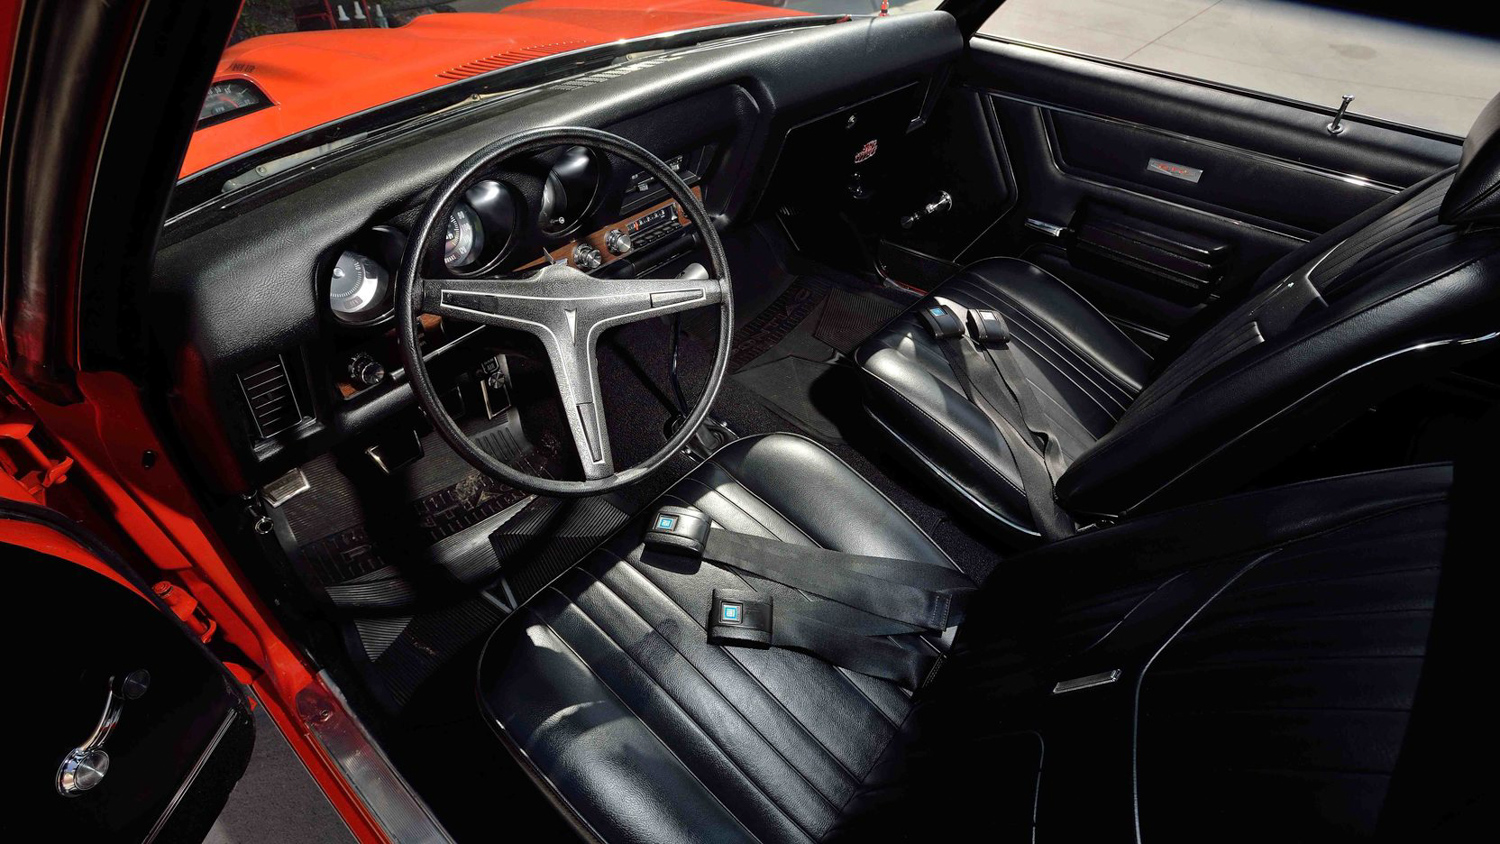 1969 Pontiac GTO Judge interior steering wheel